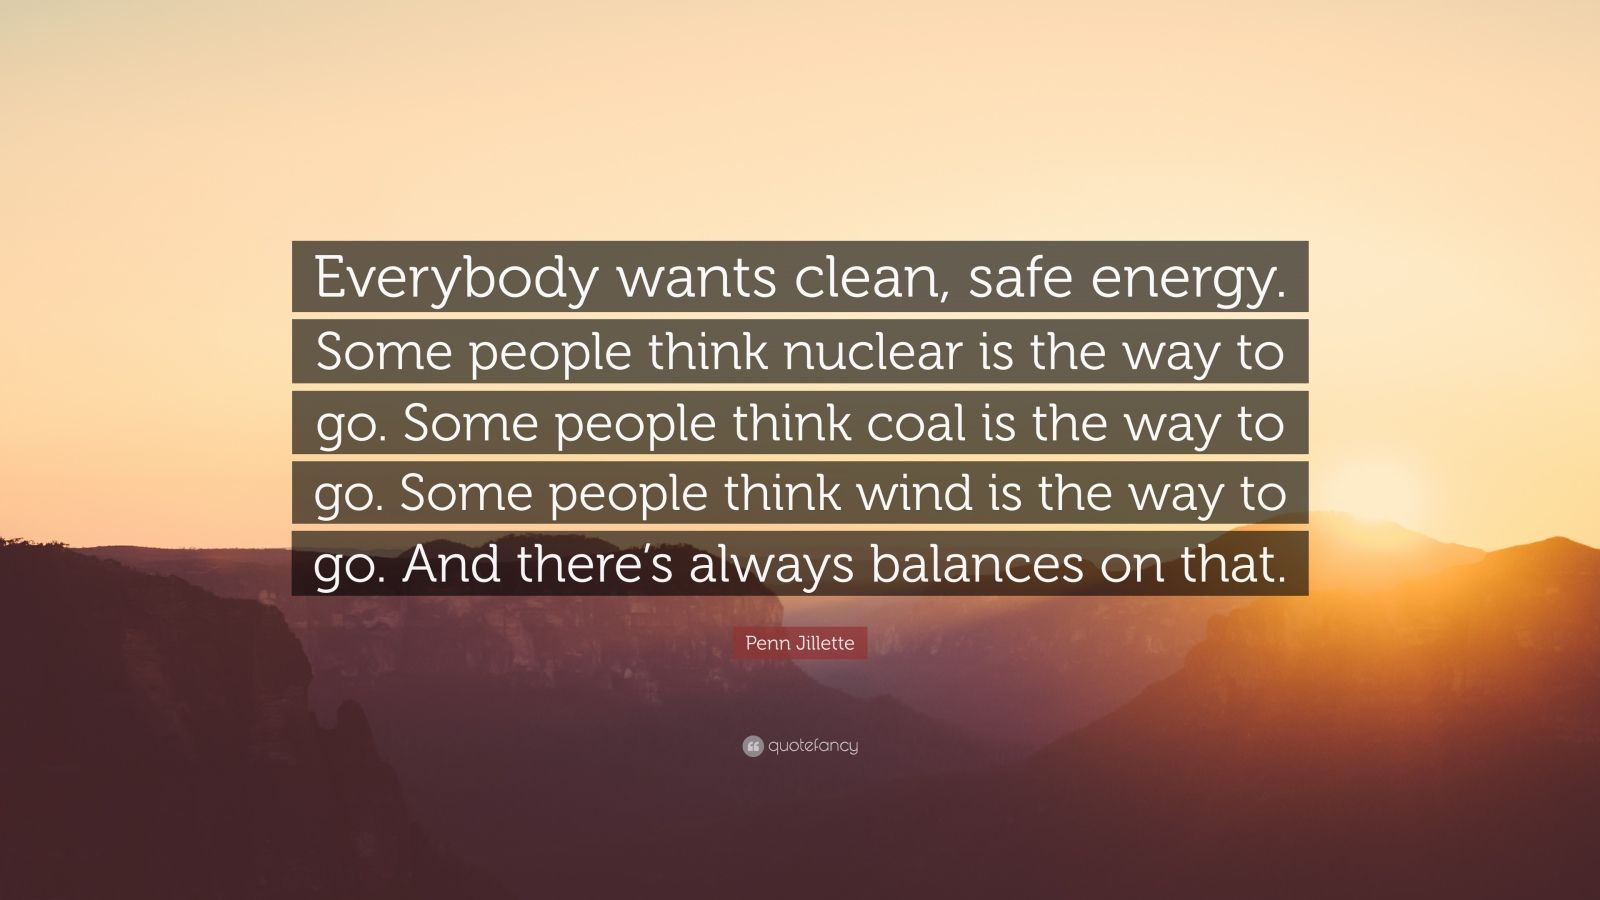 "Penn Jillette Quote: ""Everybody wants clean, safe energy. Some people think nuclear is the way to go. Some people think coal is the way to go. Some people think wind is the way to go. And there's always balances on that."""